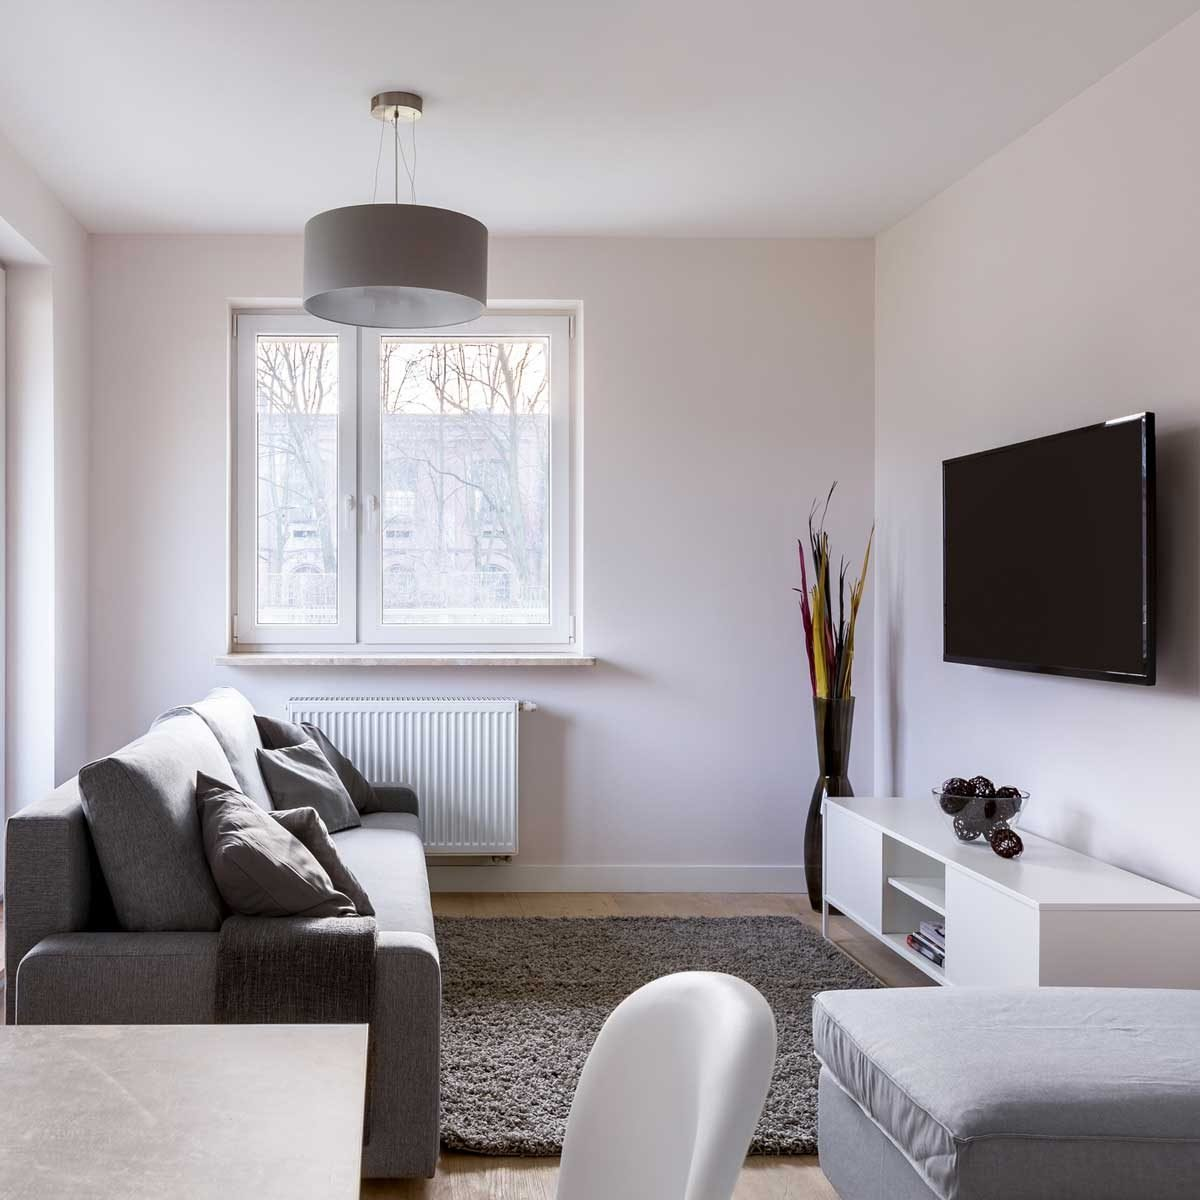 Best Furniture for Small Living Rooms on Sale Now